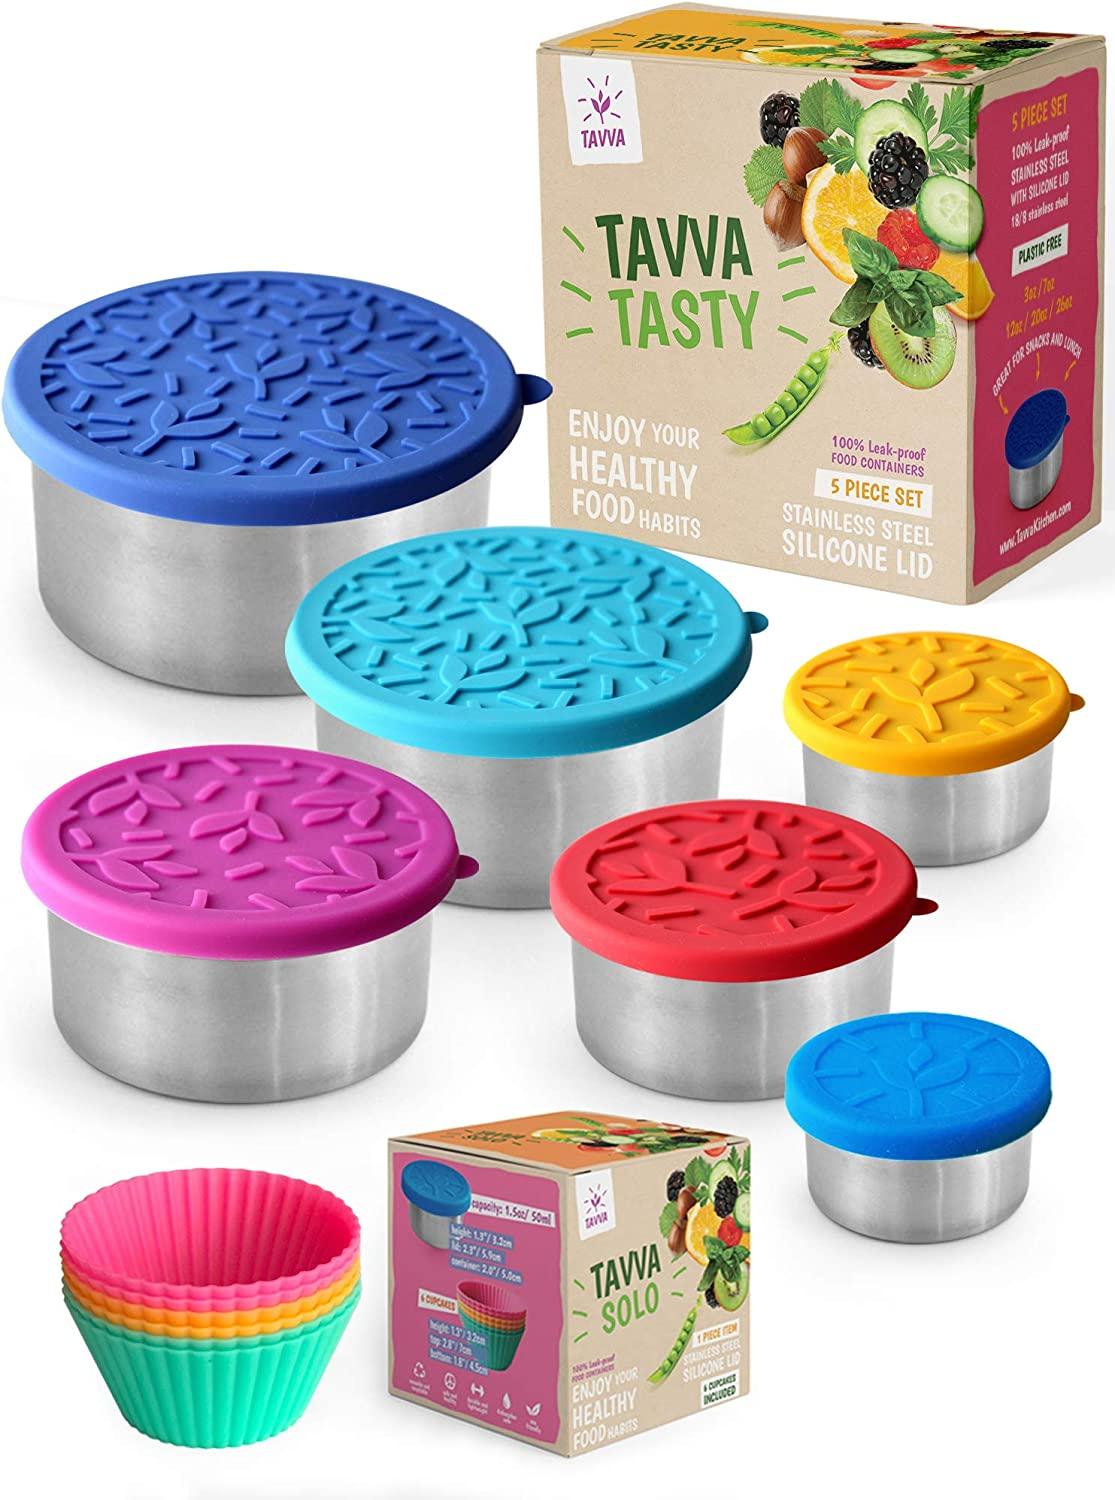 TAVVA Bundle - Set of 6 Stainless Steel Food Containers with Silicone Lids w/ 6 Reusable Silicone Baking Cups